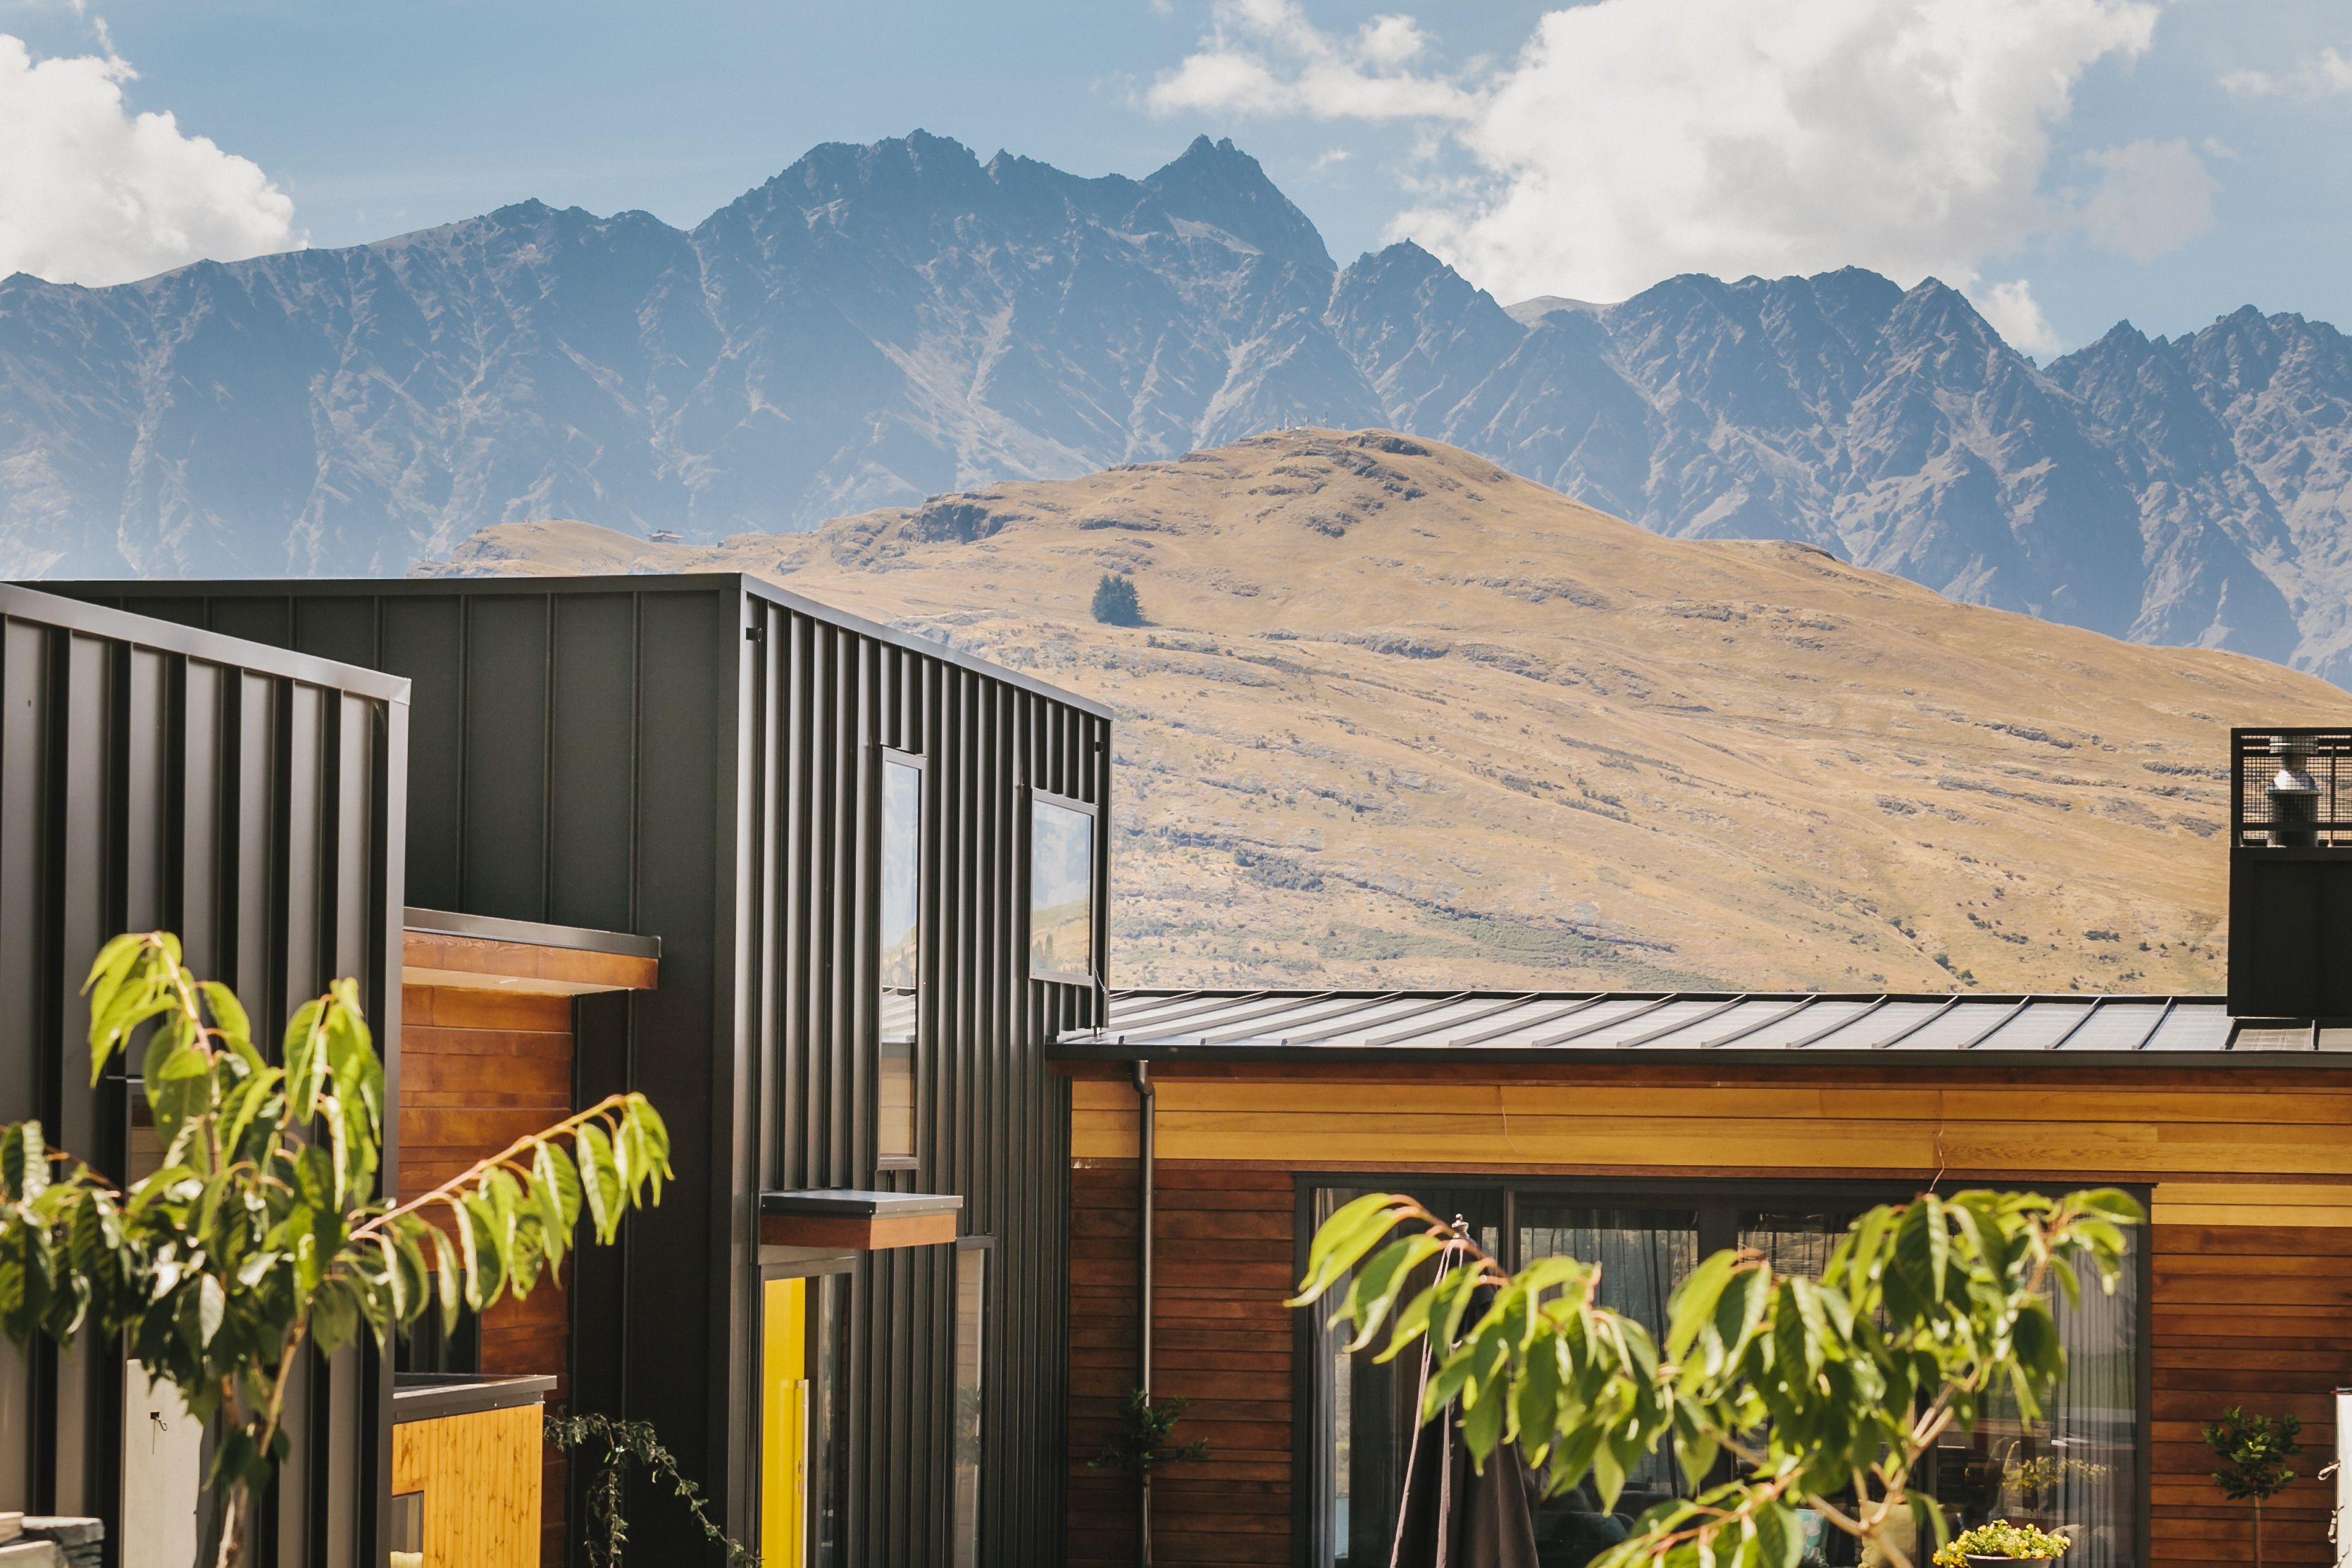 Colorbond roofing colours pictures to pin on pinterest - Colorsteel Ironsand Roofing And Cladding Queenstown New Zealand